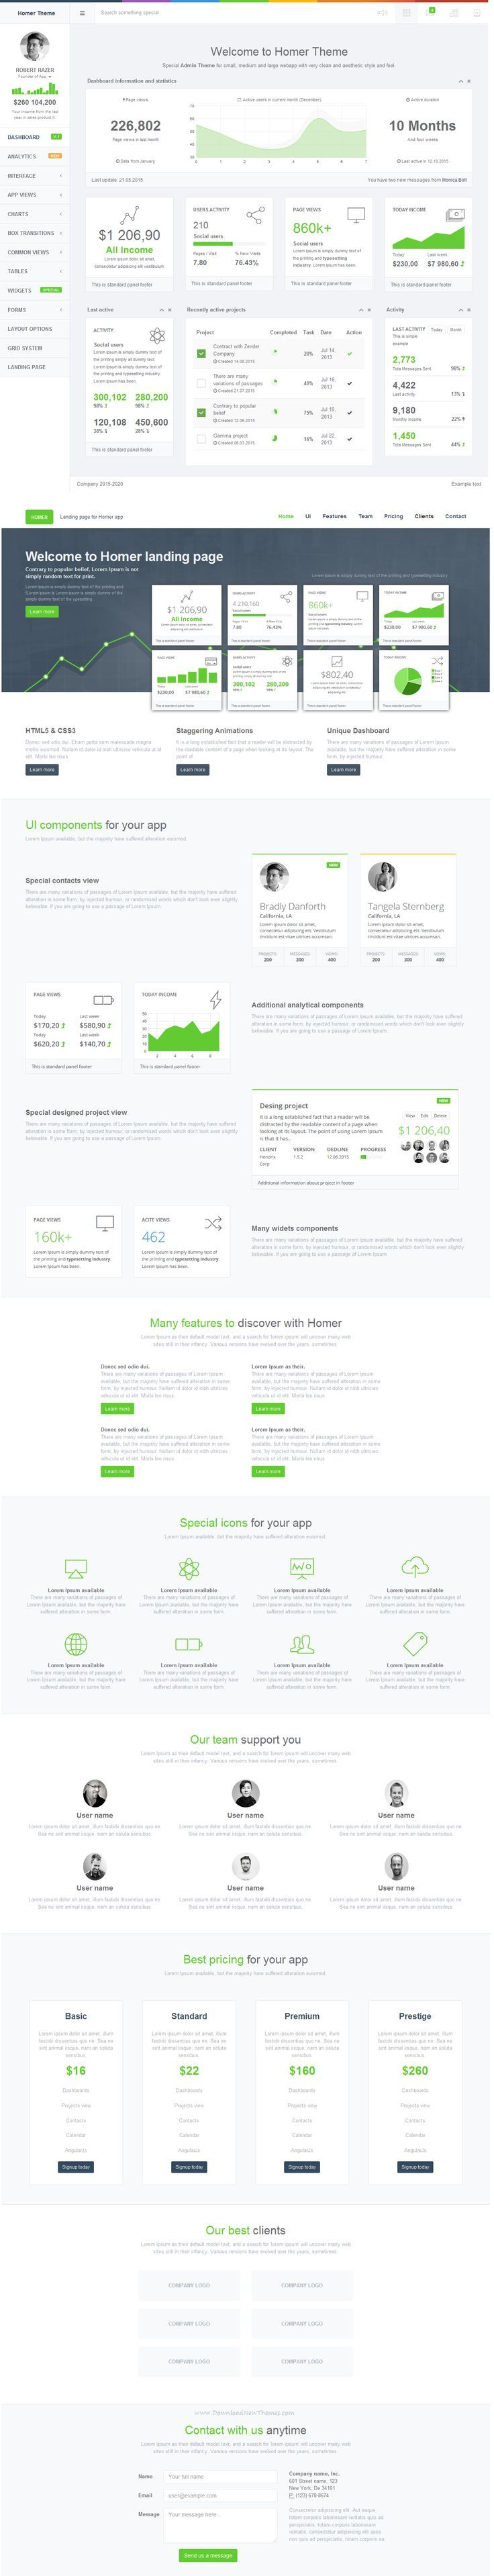 sharepoint responsive template - 1000 ideas about sharepoint design on pinterest pantone